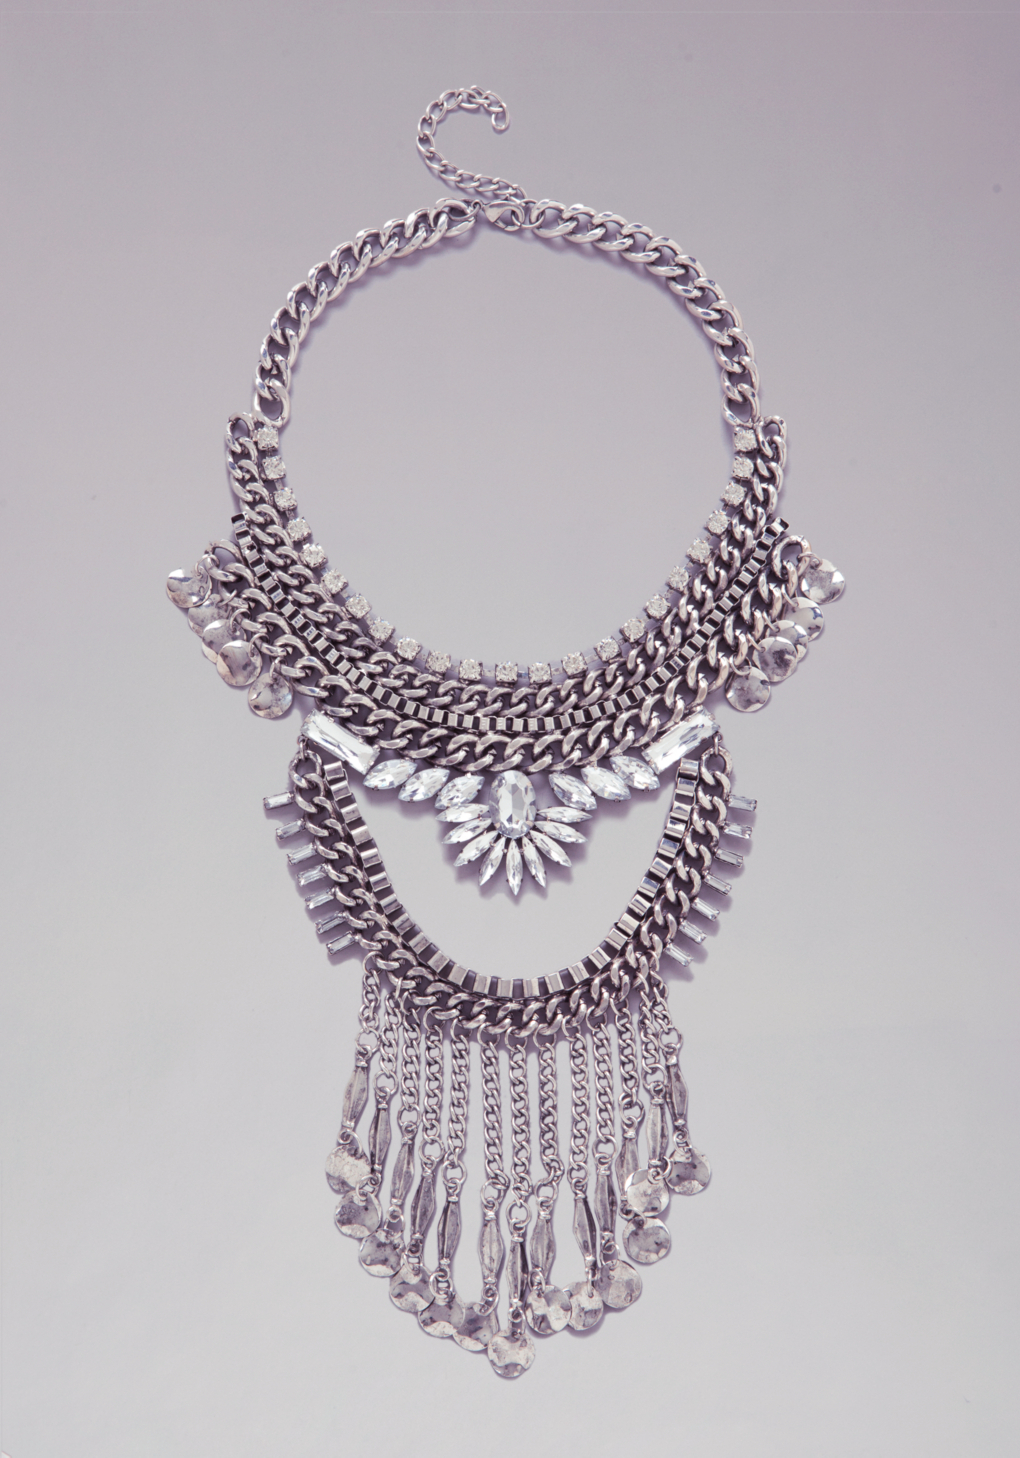 Bebe Chainlink Coin Necklace in Metallic - Lyst